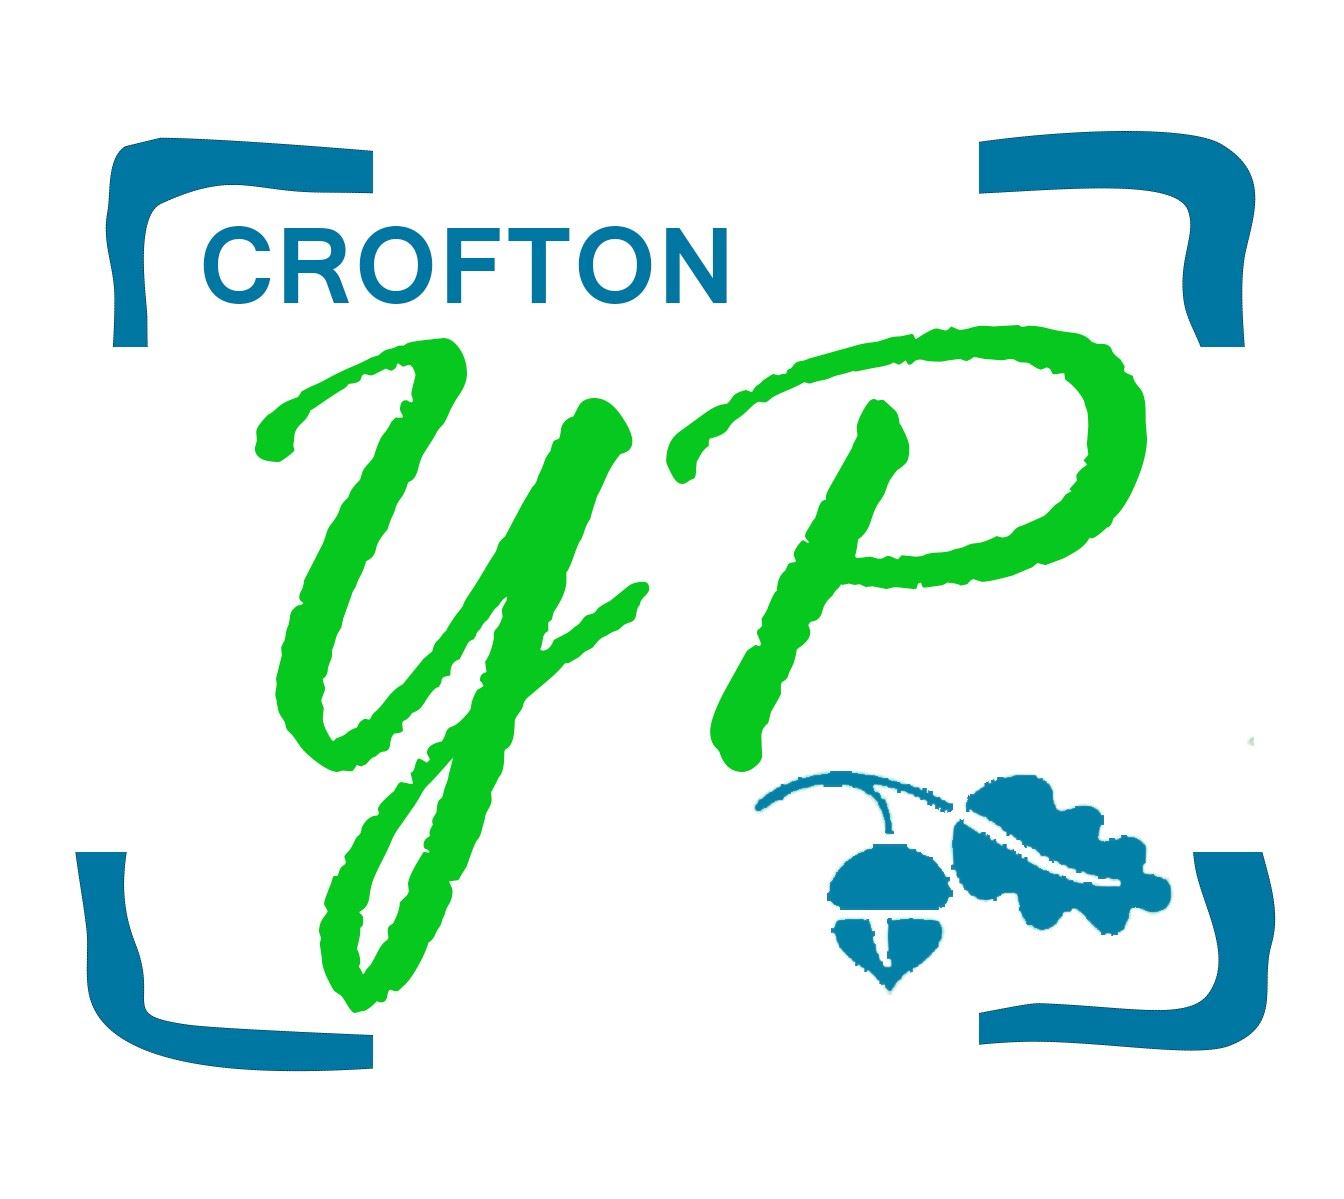 crofton chatrooms Local chat and make friends - make new friends or ask for local recommendations.